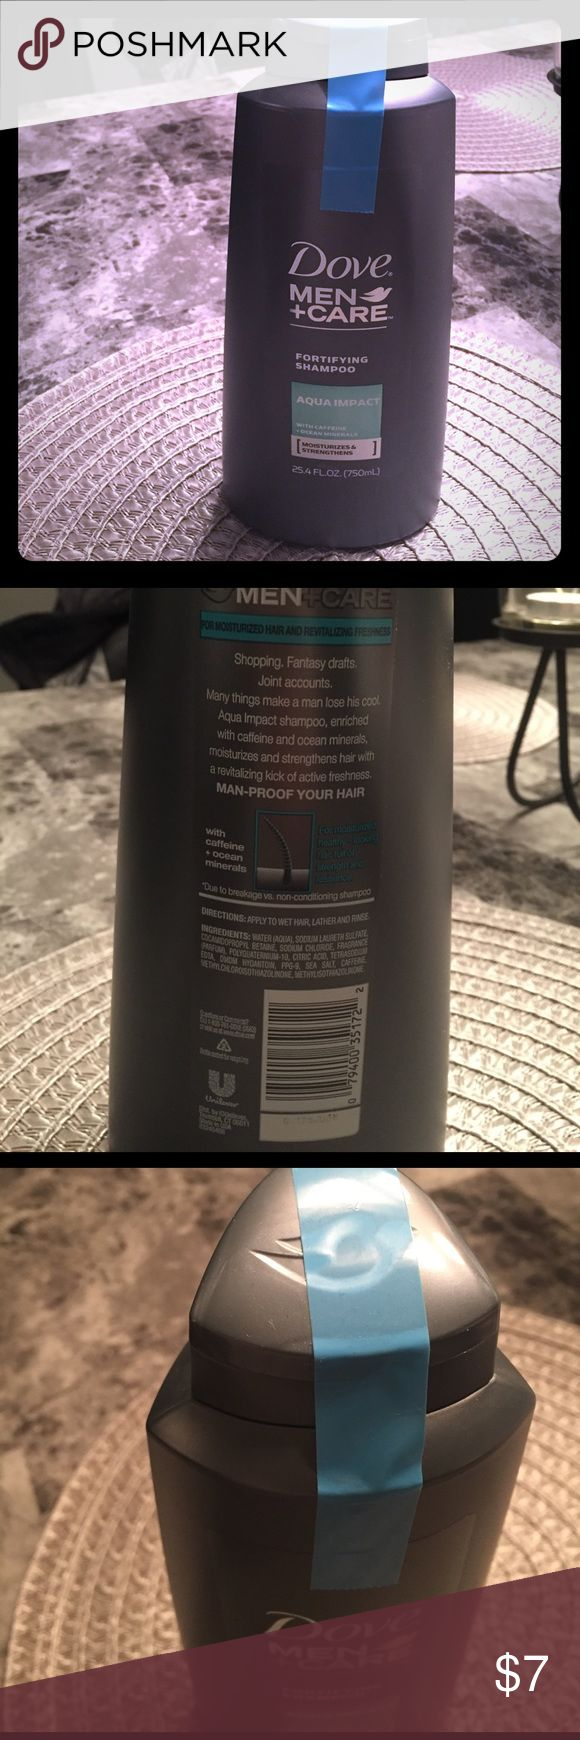 NEVER OPENED Dove men's shampoo Men's dove shampoo - new! Make an offer if interested Other